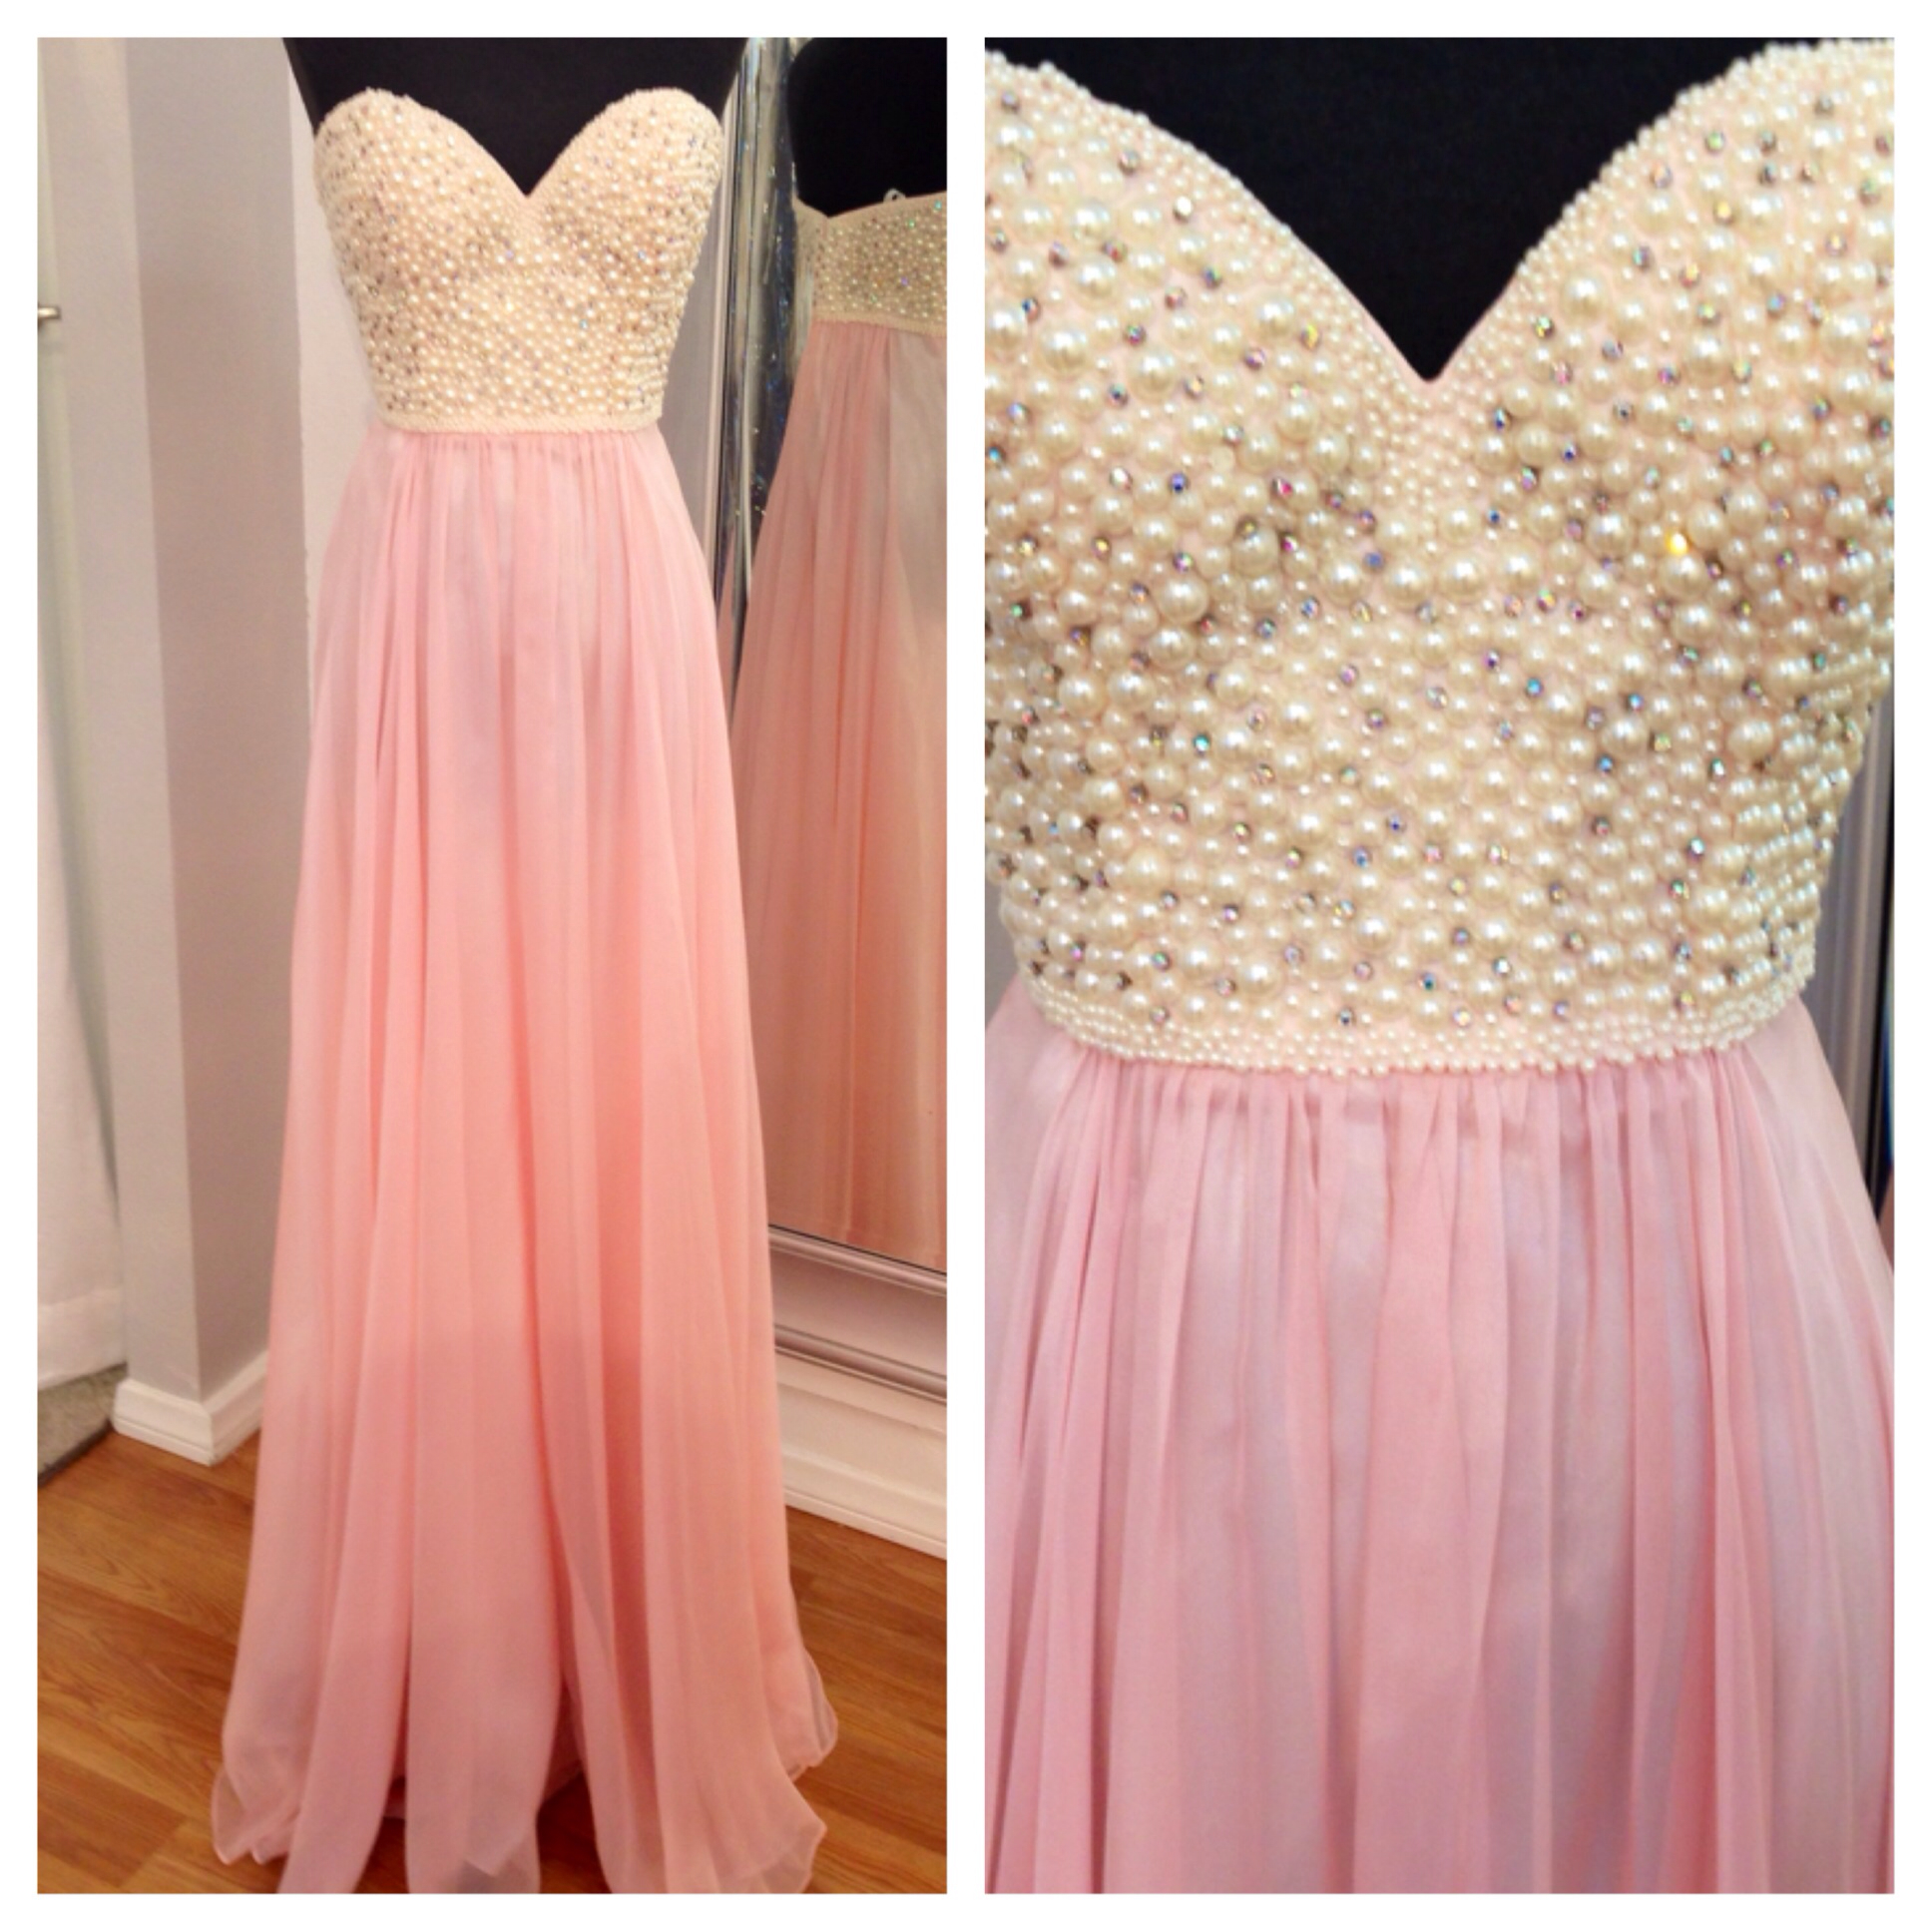 This will be my prom dress dresses pinterest prom homecoming